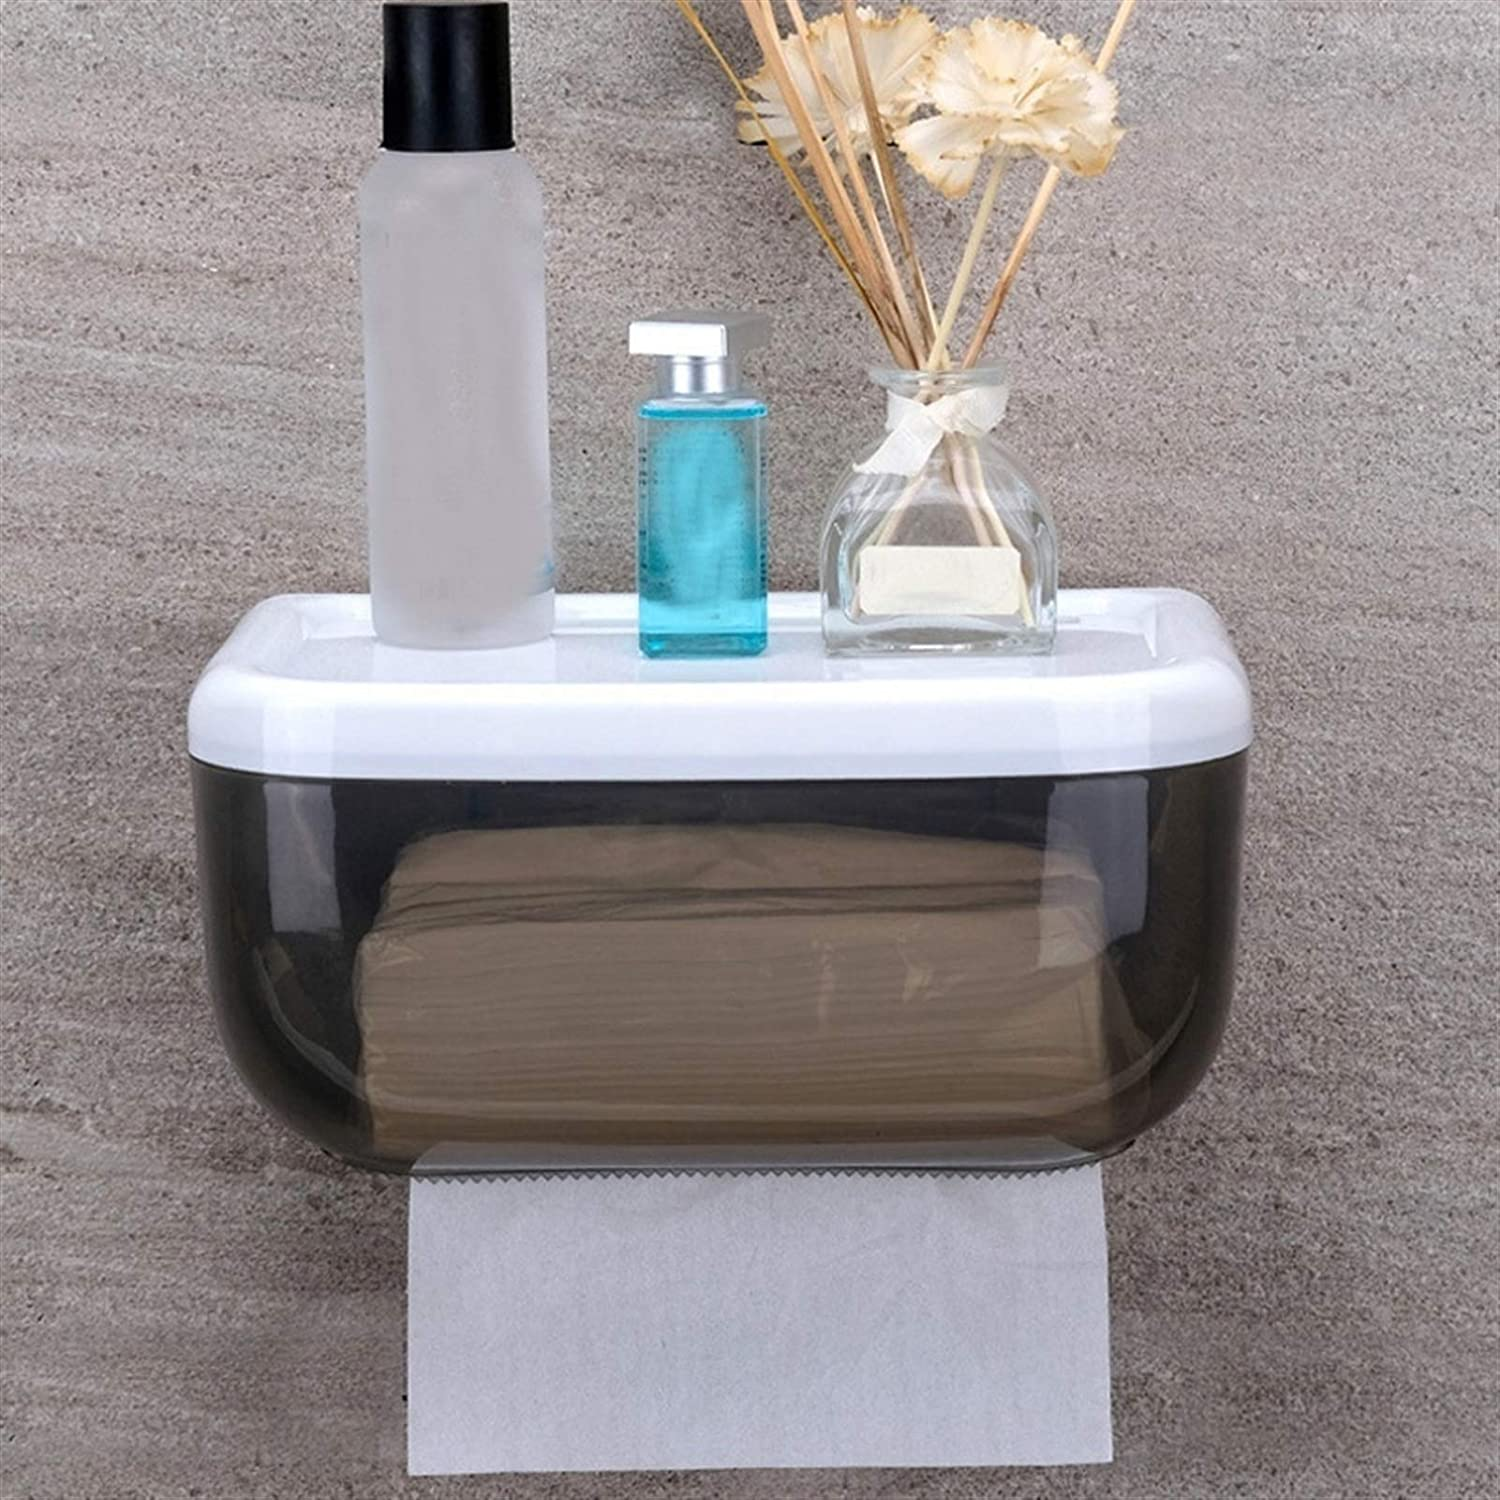 Special sale item Storage Shelf Wall-Mounted Tissue Box Bathroom Quality inspection Waterproof Toilet